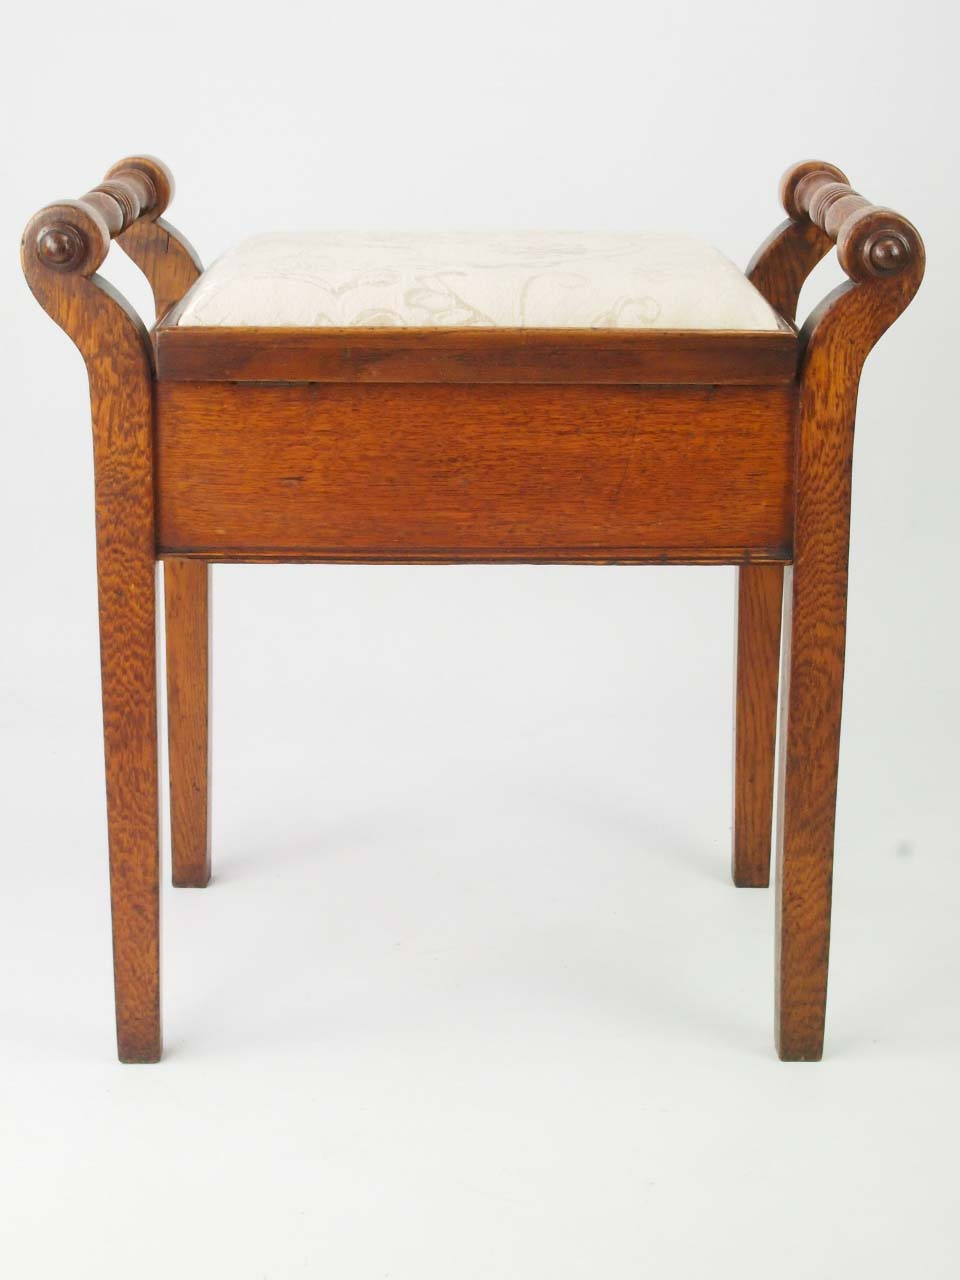 Antique Edwardian Oak Piano Stool For Sale